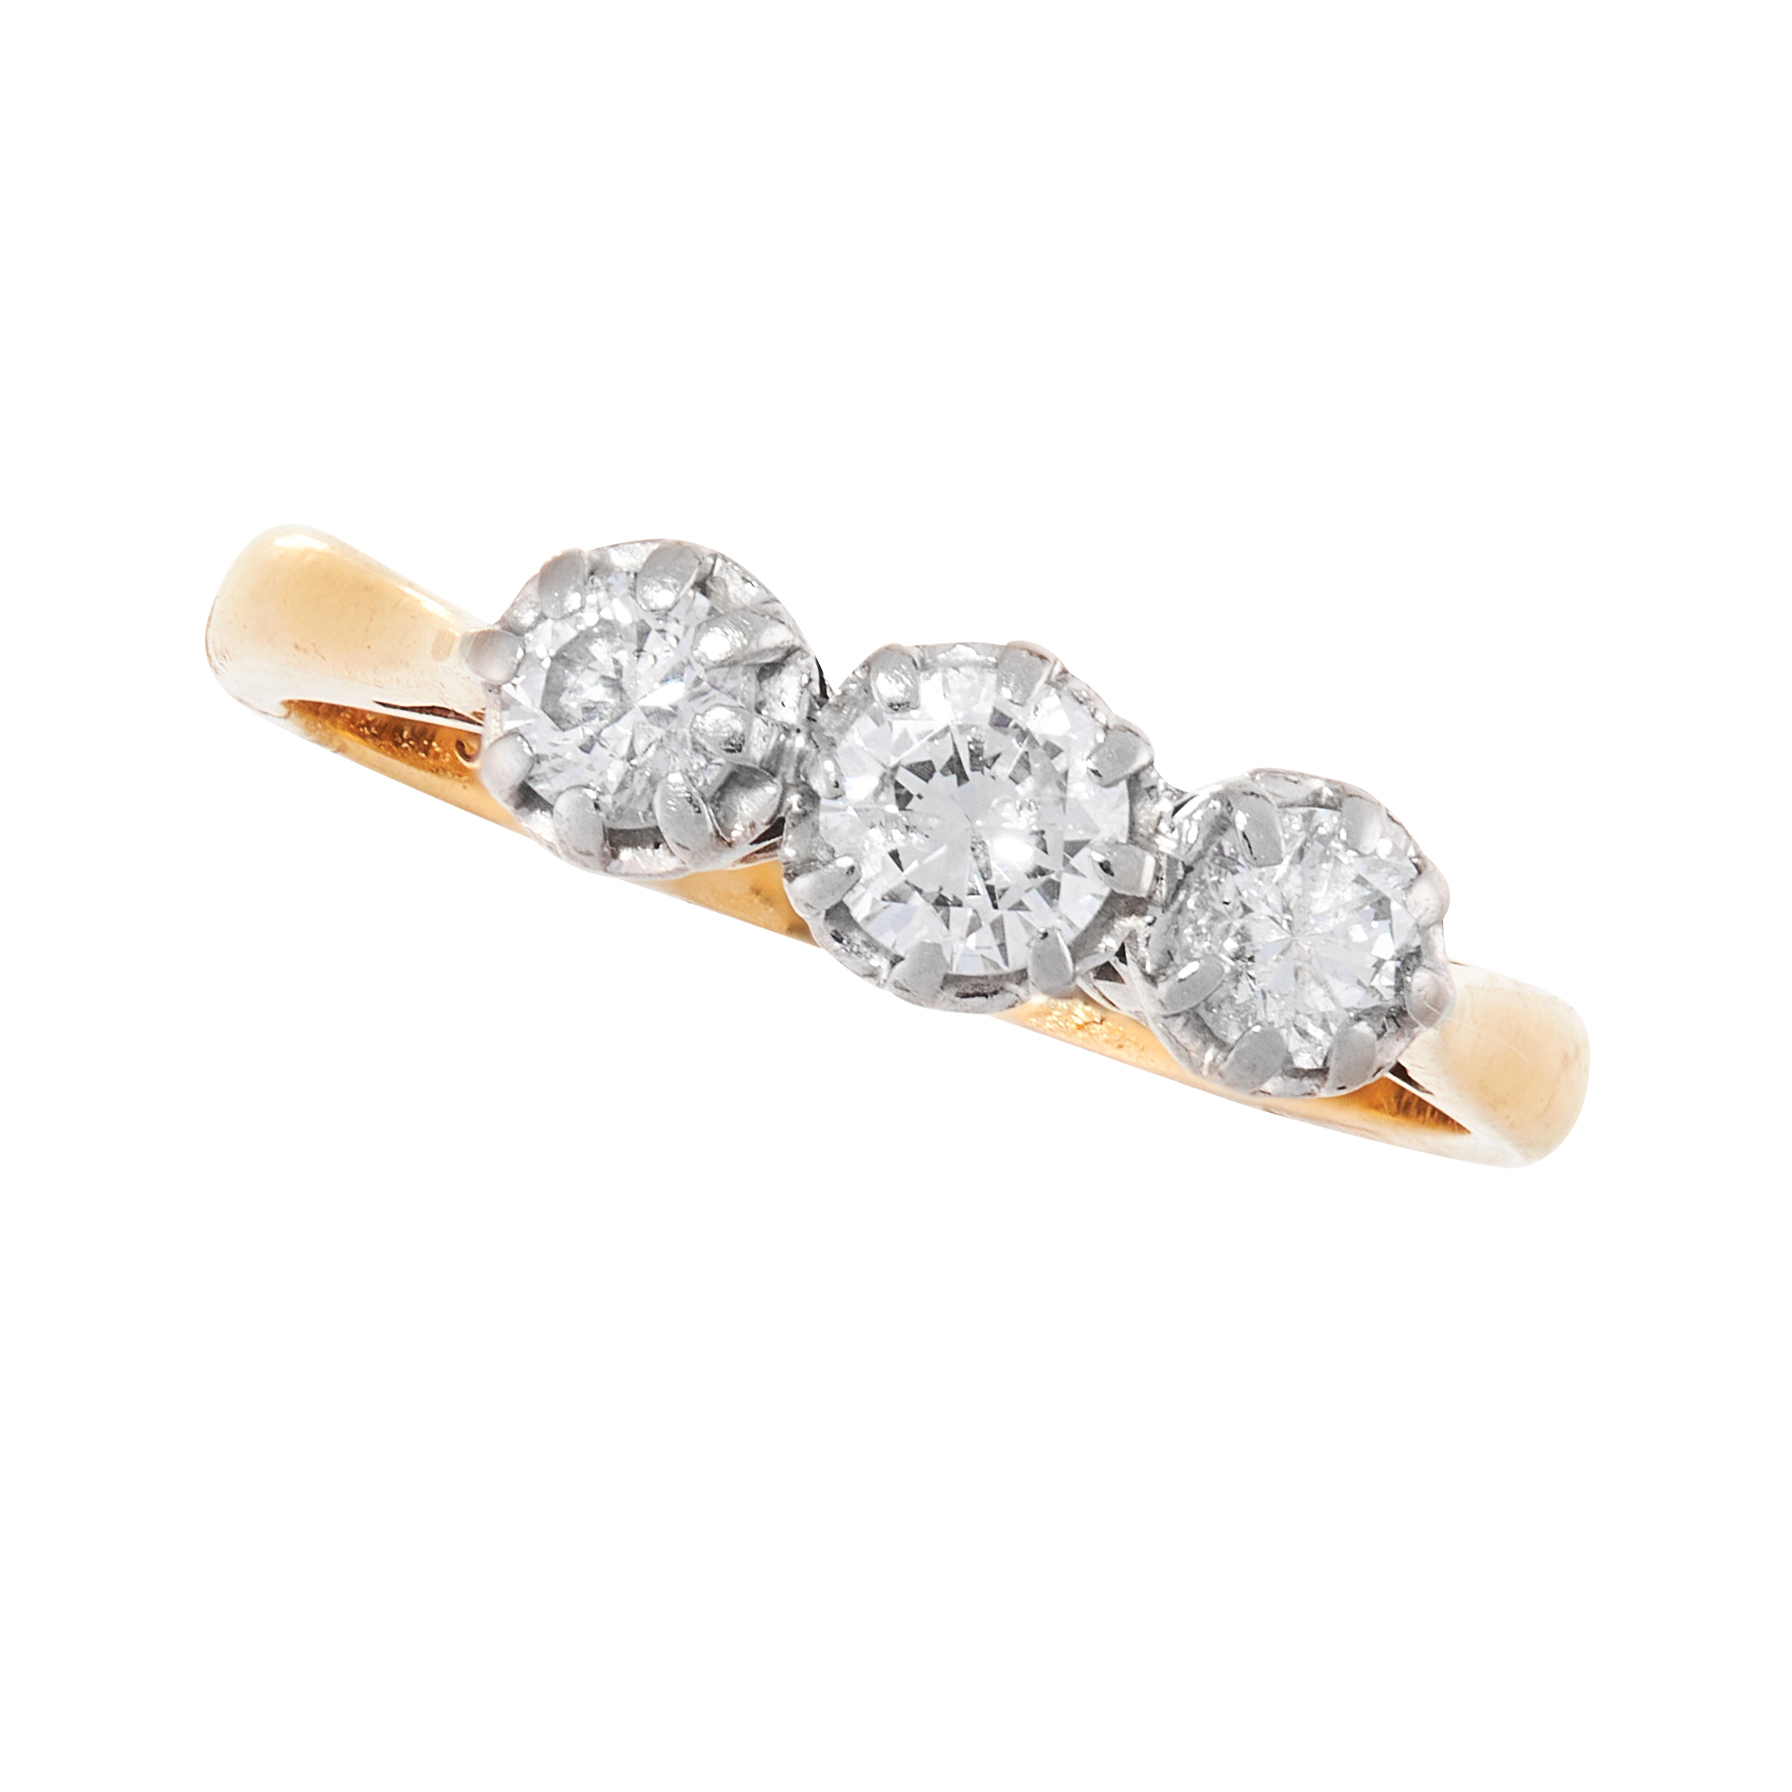 A DIAMOND TRILOGY DRESS RING, CIRCA 1940 in 18ct yellow gold and platinum, set with a trio of